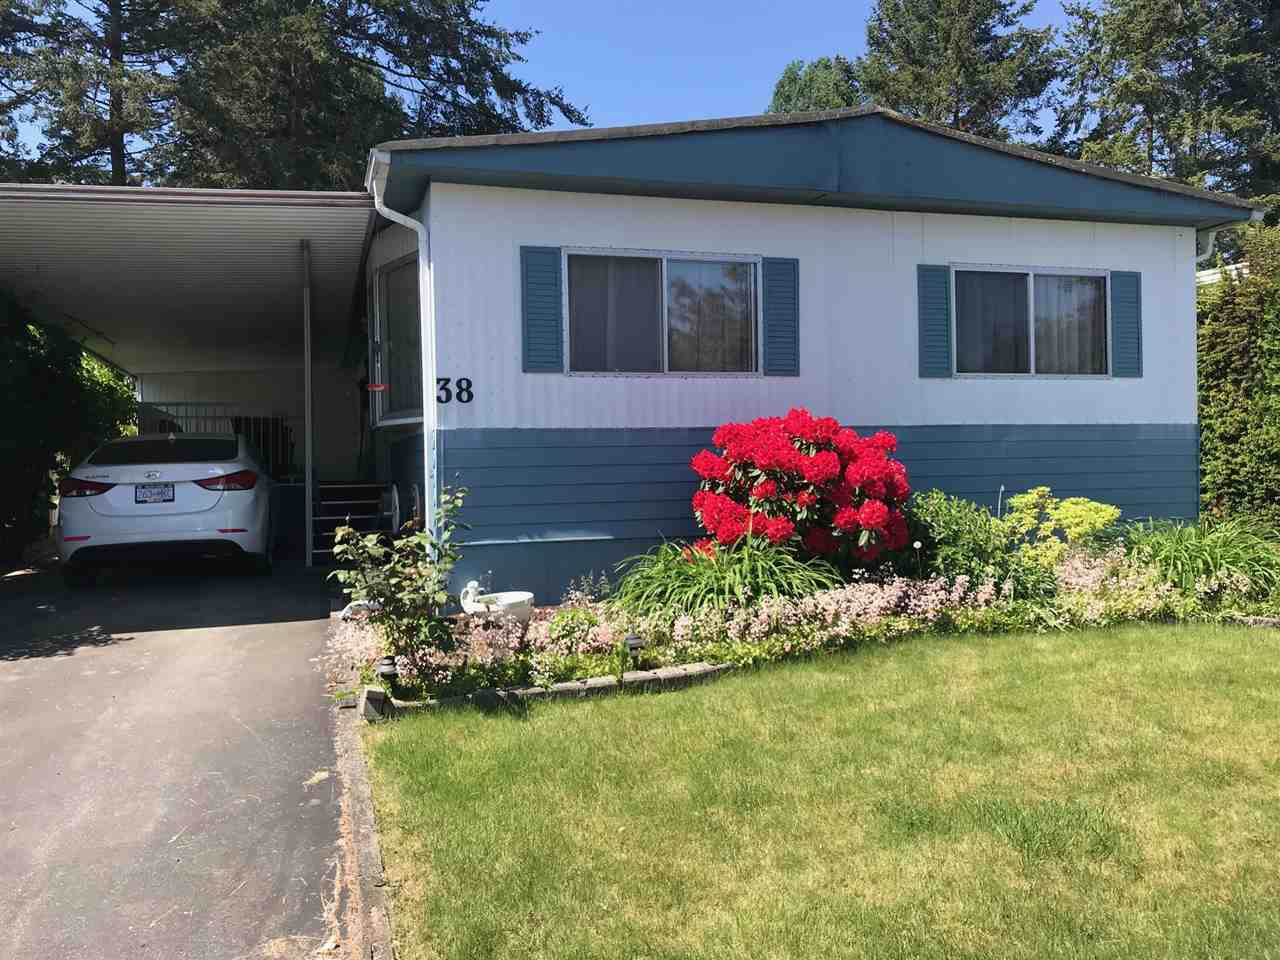 """Main Photo: 38 1840 160 Street in Surrey: King George Corridor Manufactured Home for sale in """"BREAKAWAY BAYS"""" (South Surrey White Rock)  : MLS®# R2271120"""